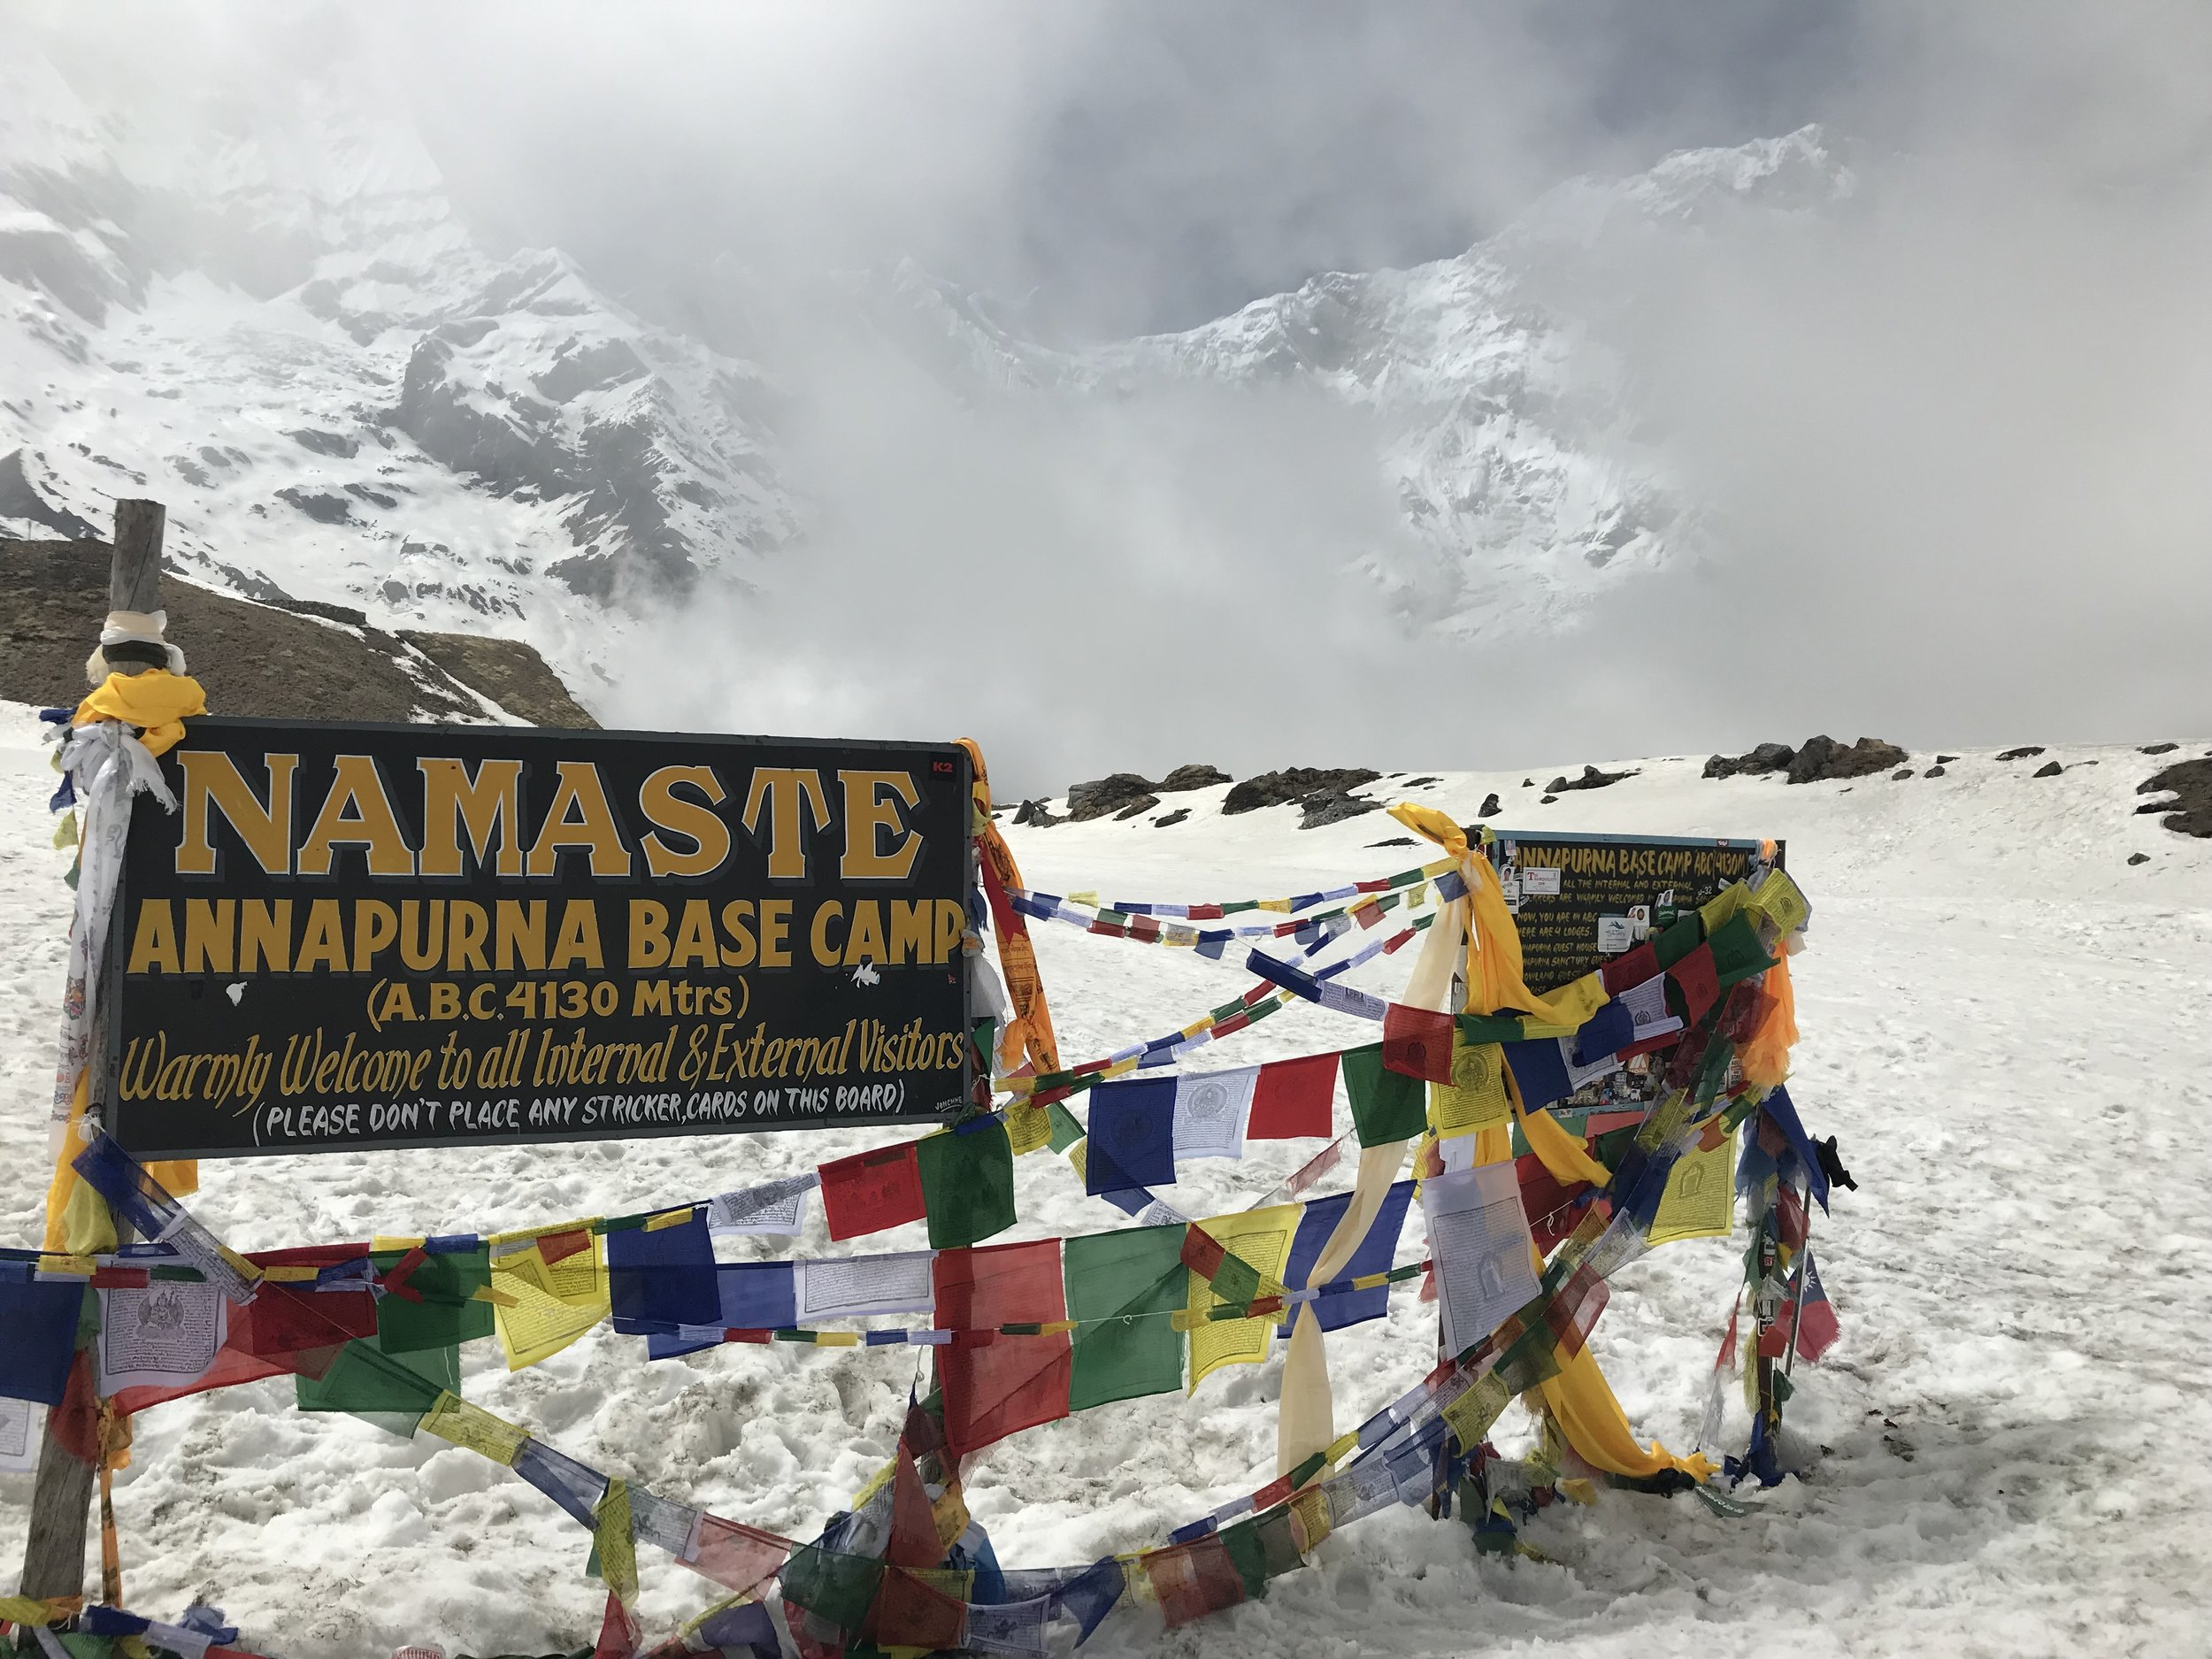 Namaste Annapurna Base Camp